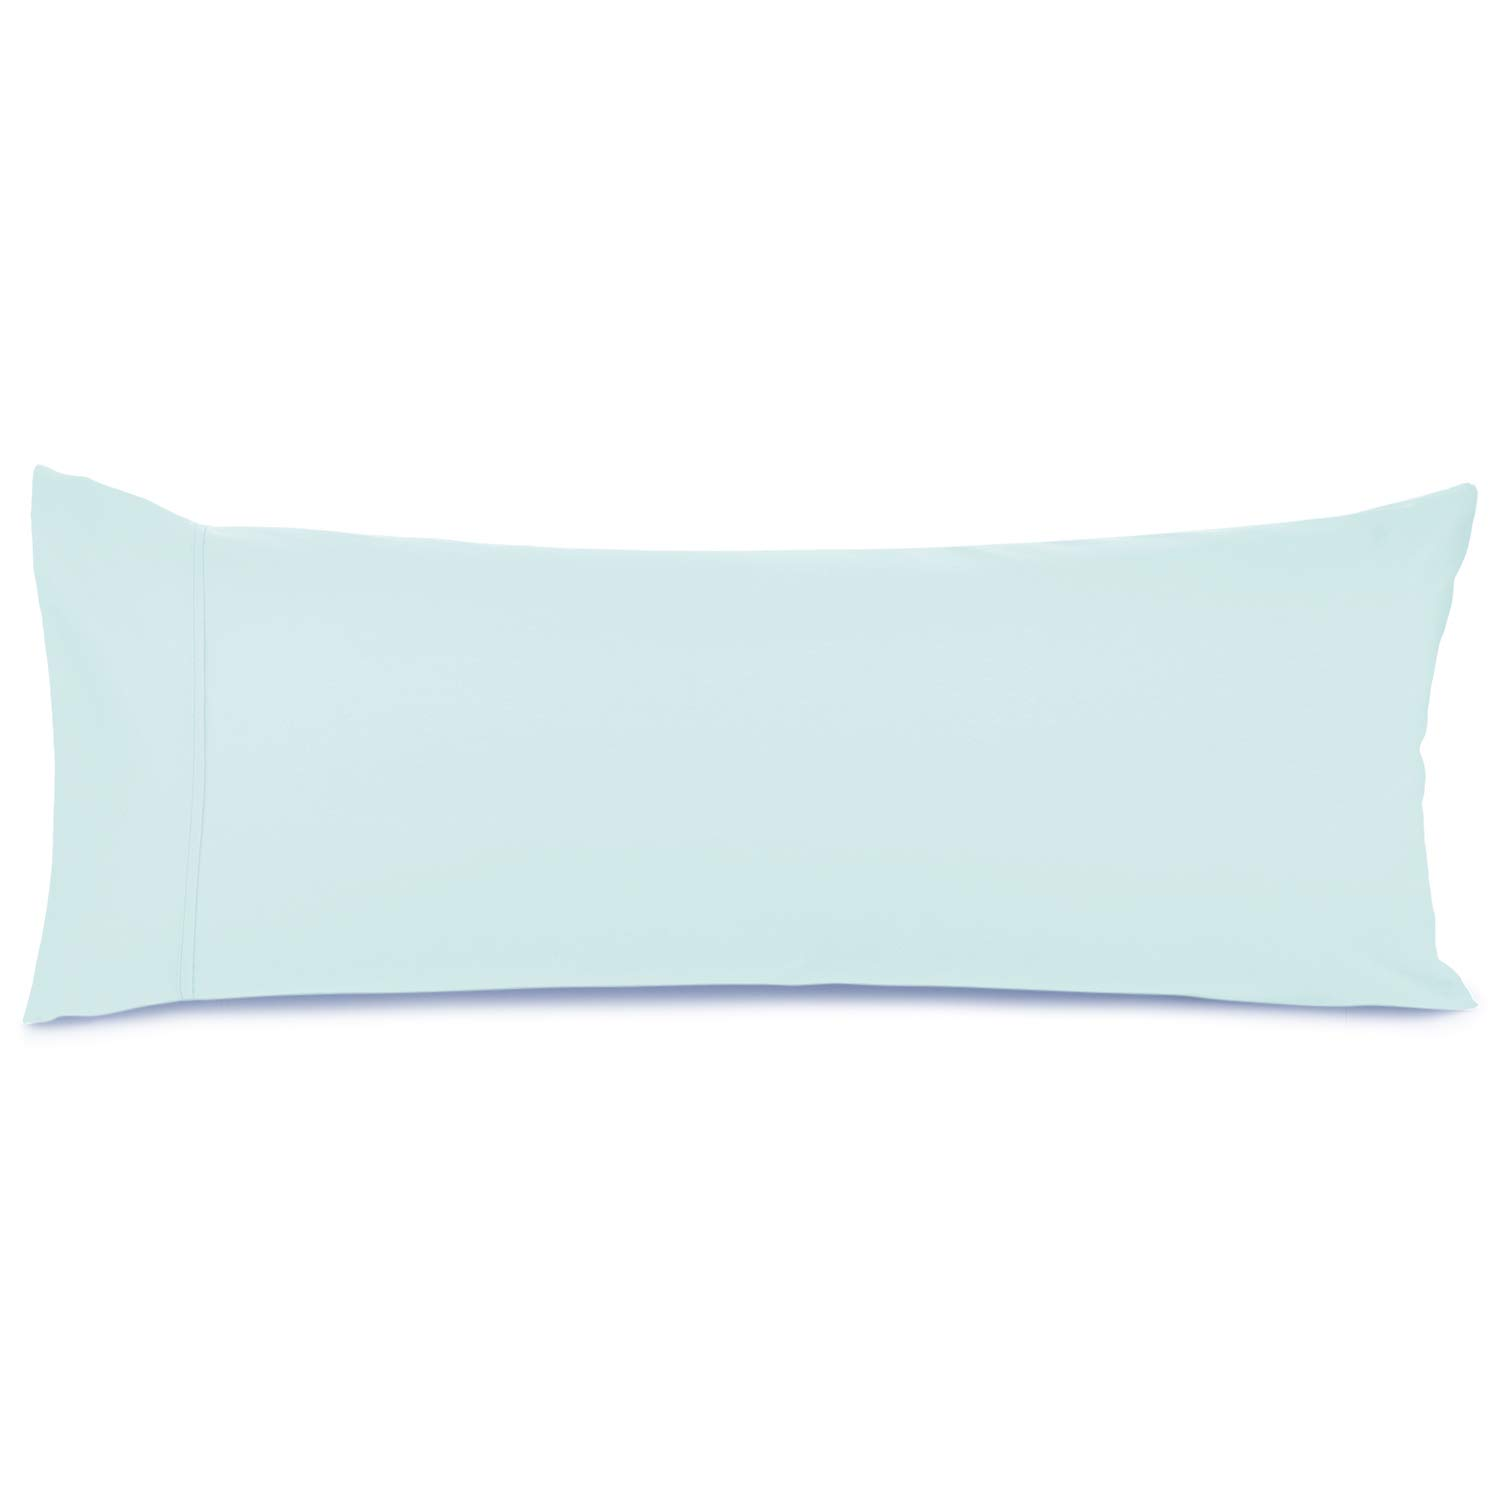 """Nestl Bedding Body Pillow Case - Double Brushed Microfiber Hypoallergenic Pillow Covers - 1800 Series Premium Bed Pillow Cases, 20""""x54"""" - Light Baby Blue"""